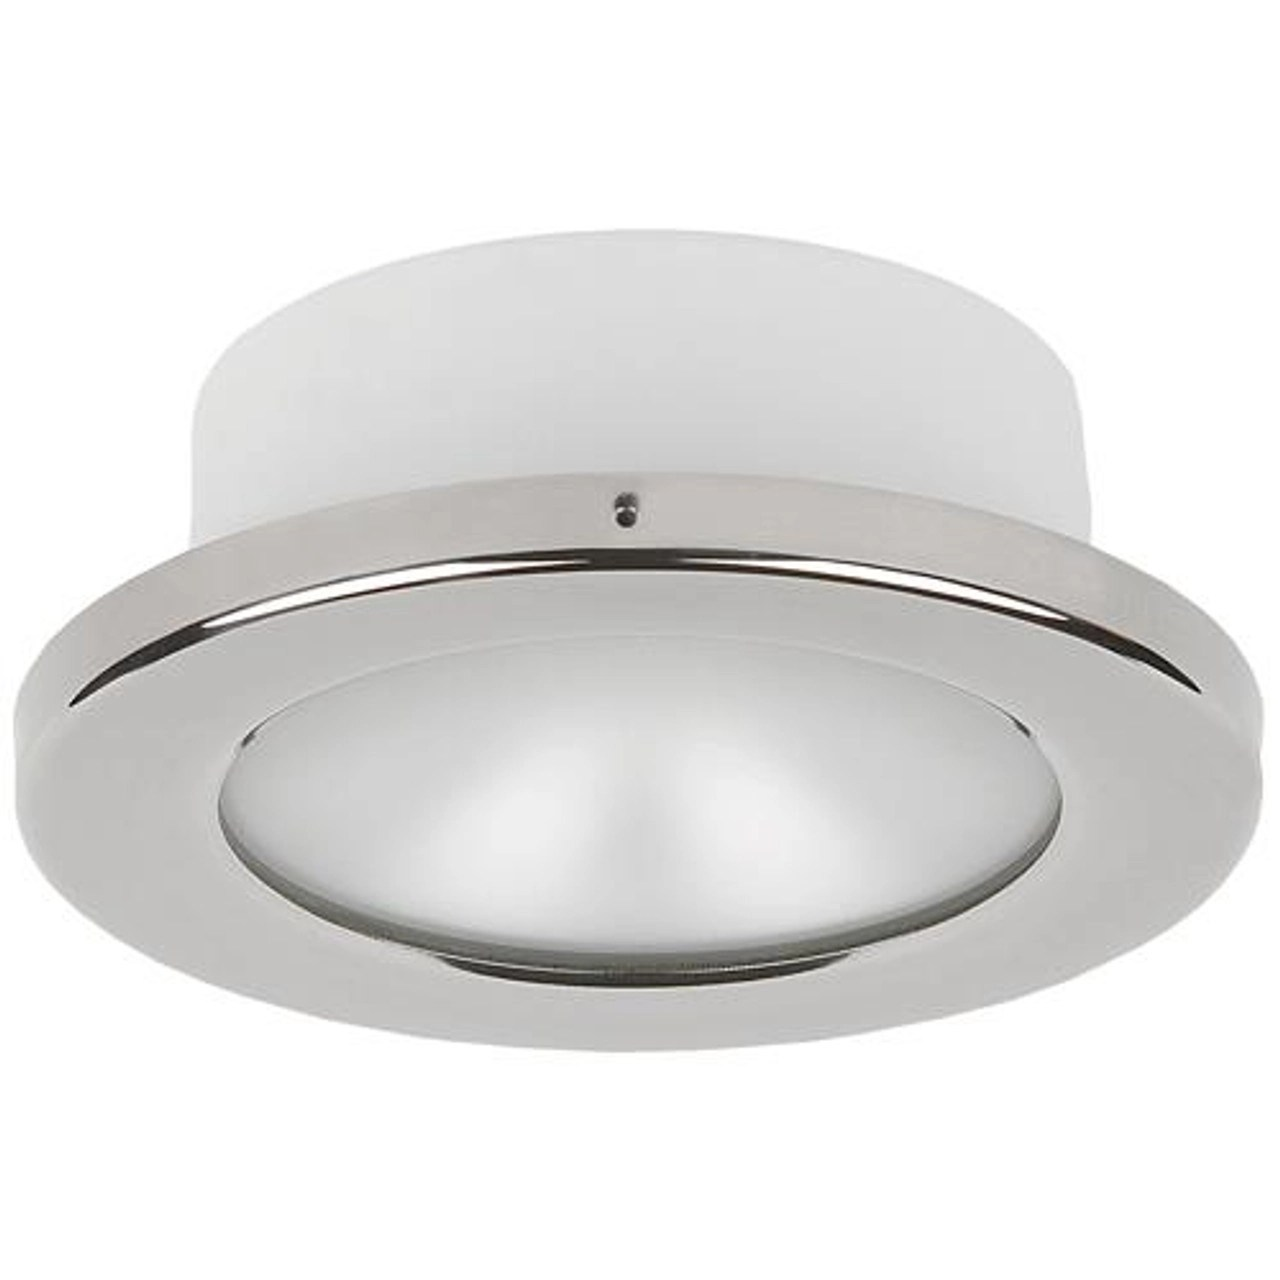 t105 led recessed down light 4  [ 1280 x 1280 Pixel ]